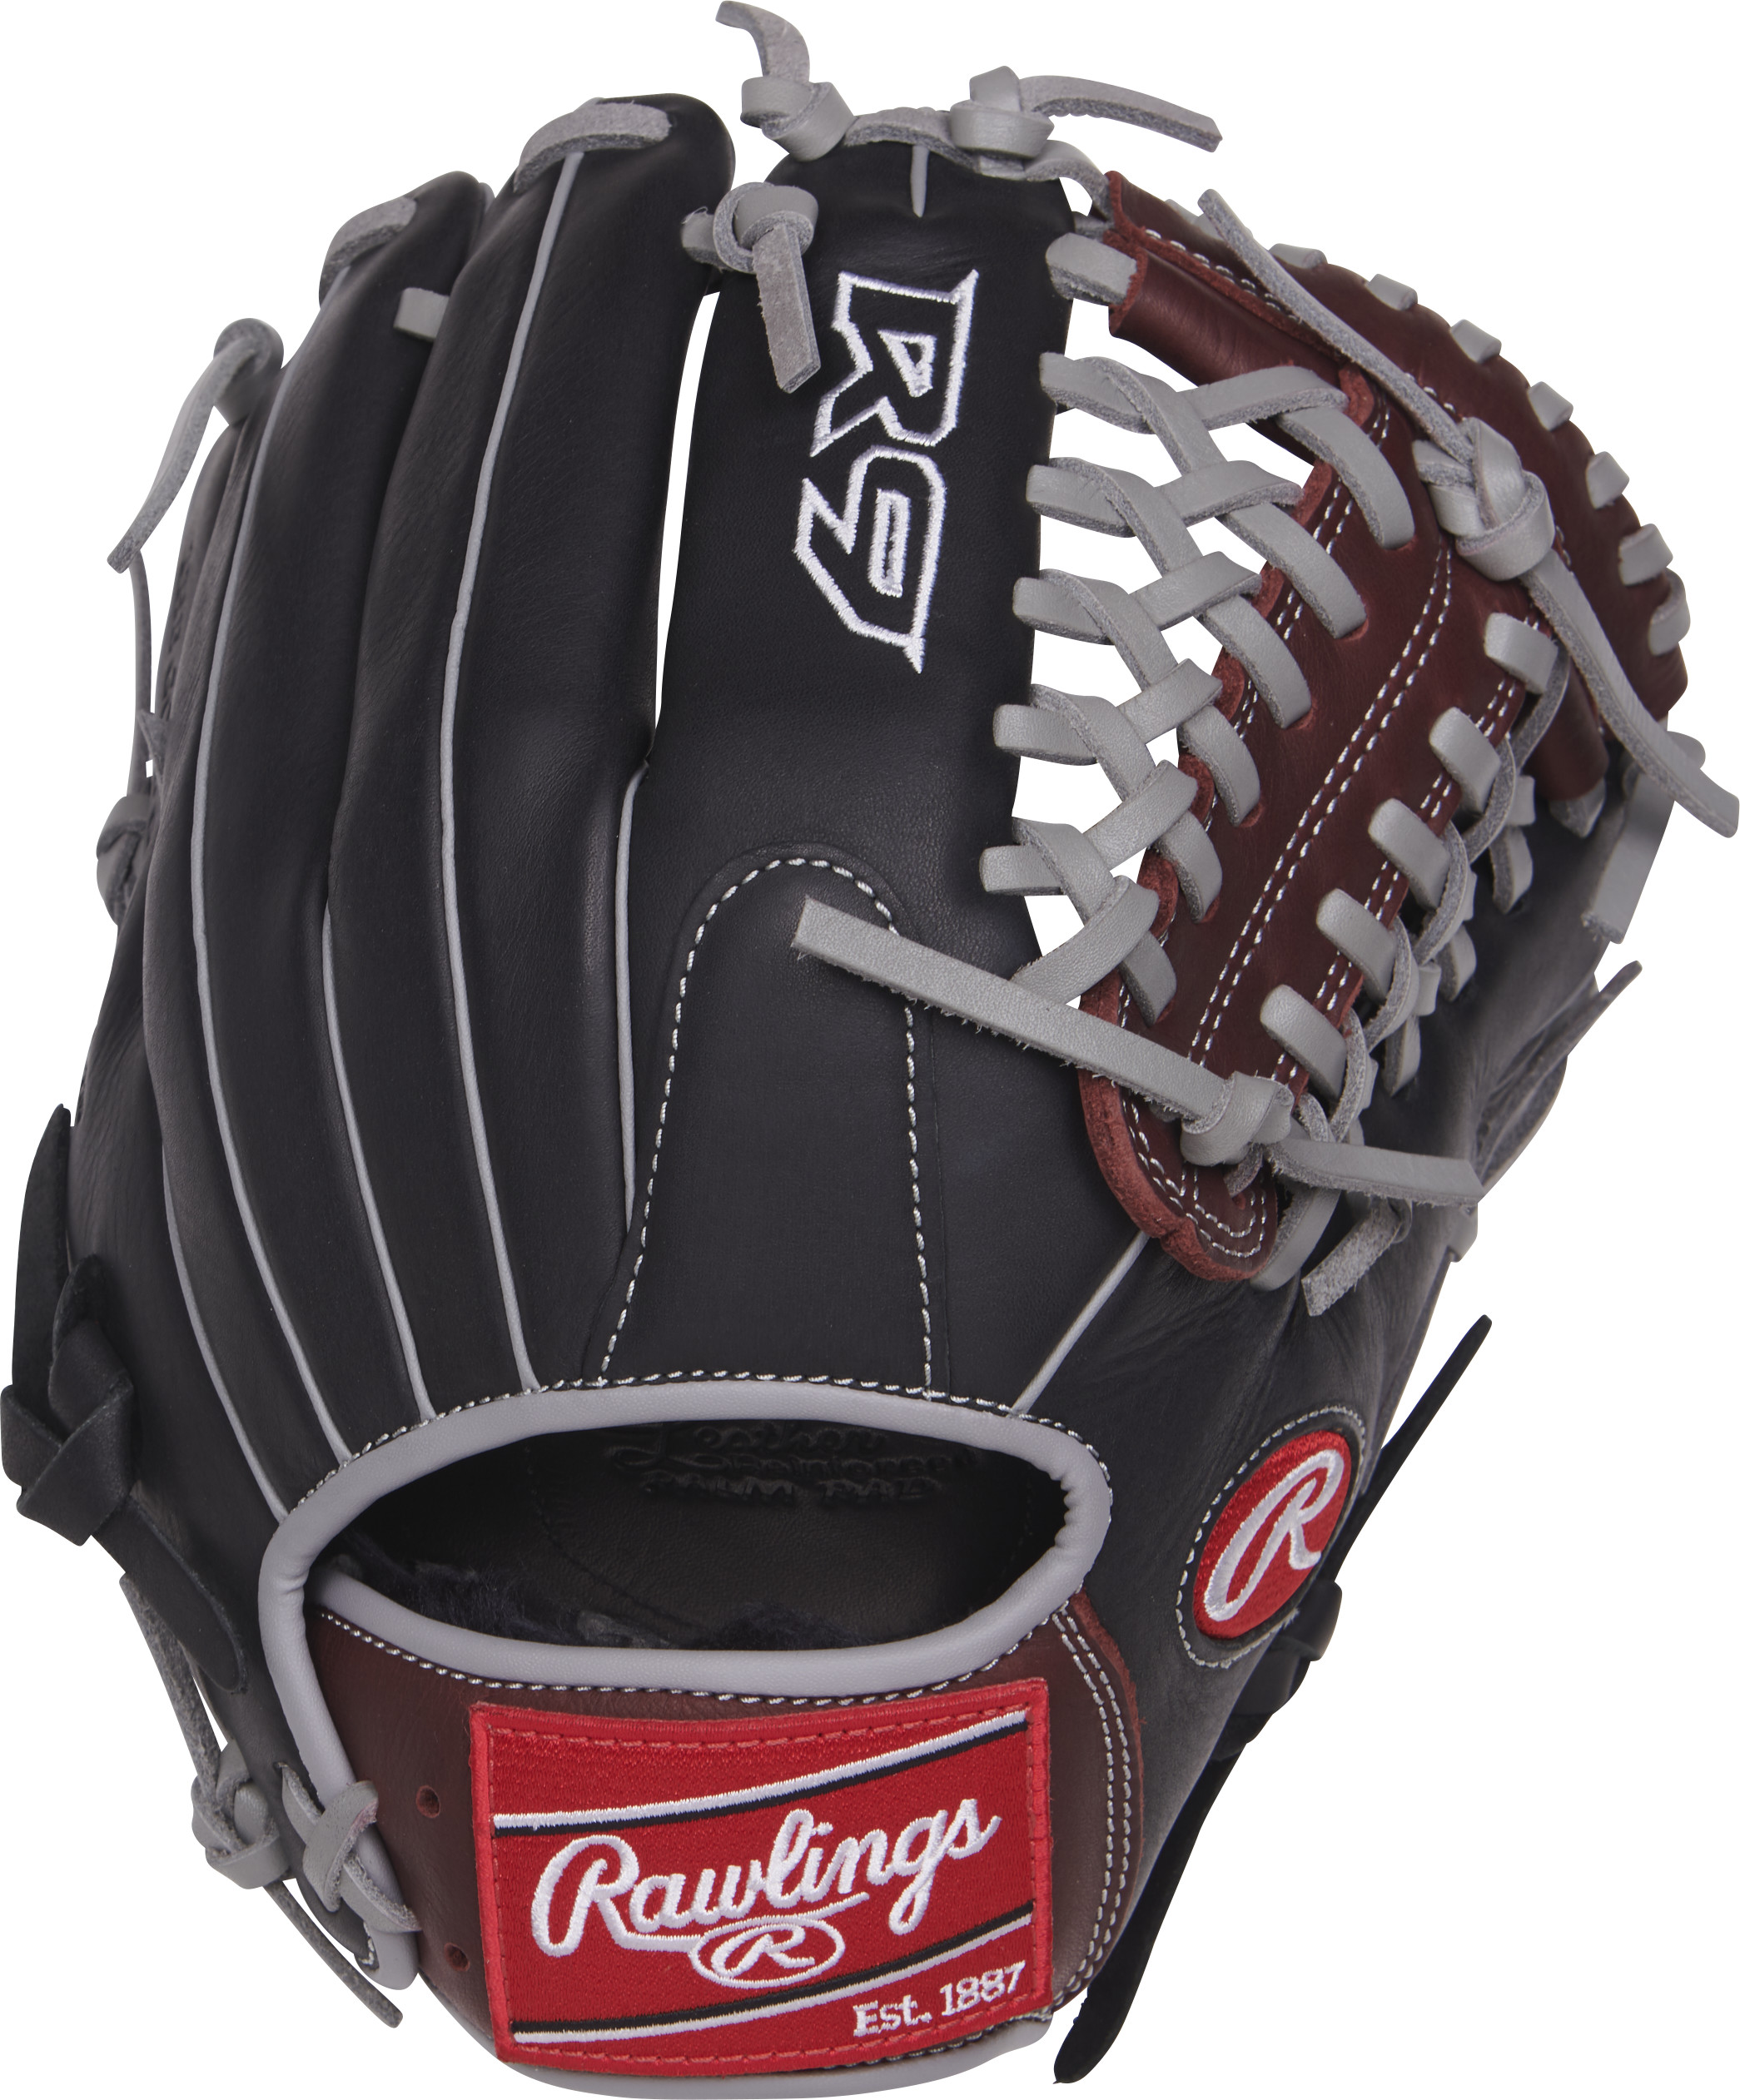 http://www.bestbatdeals.com/images/gloves/rawlings/R9205-4BSG-2.jpg